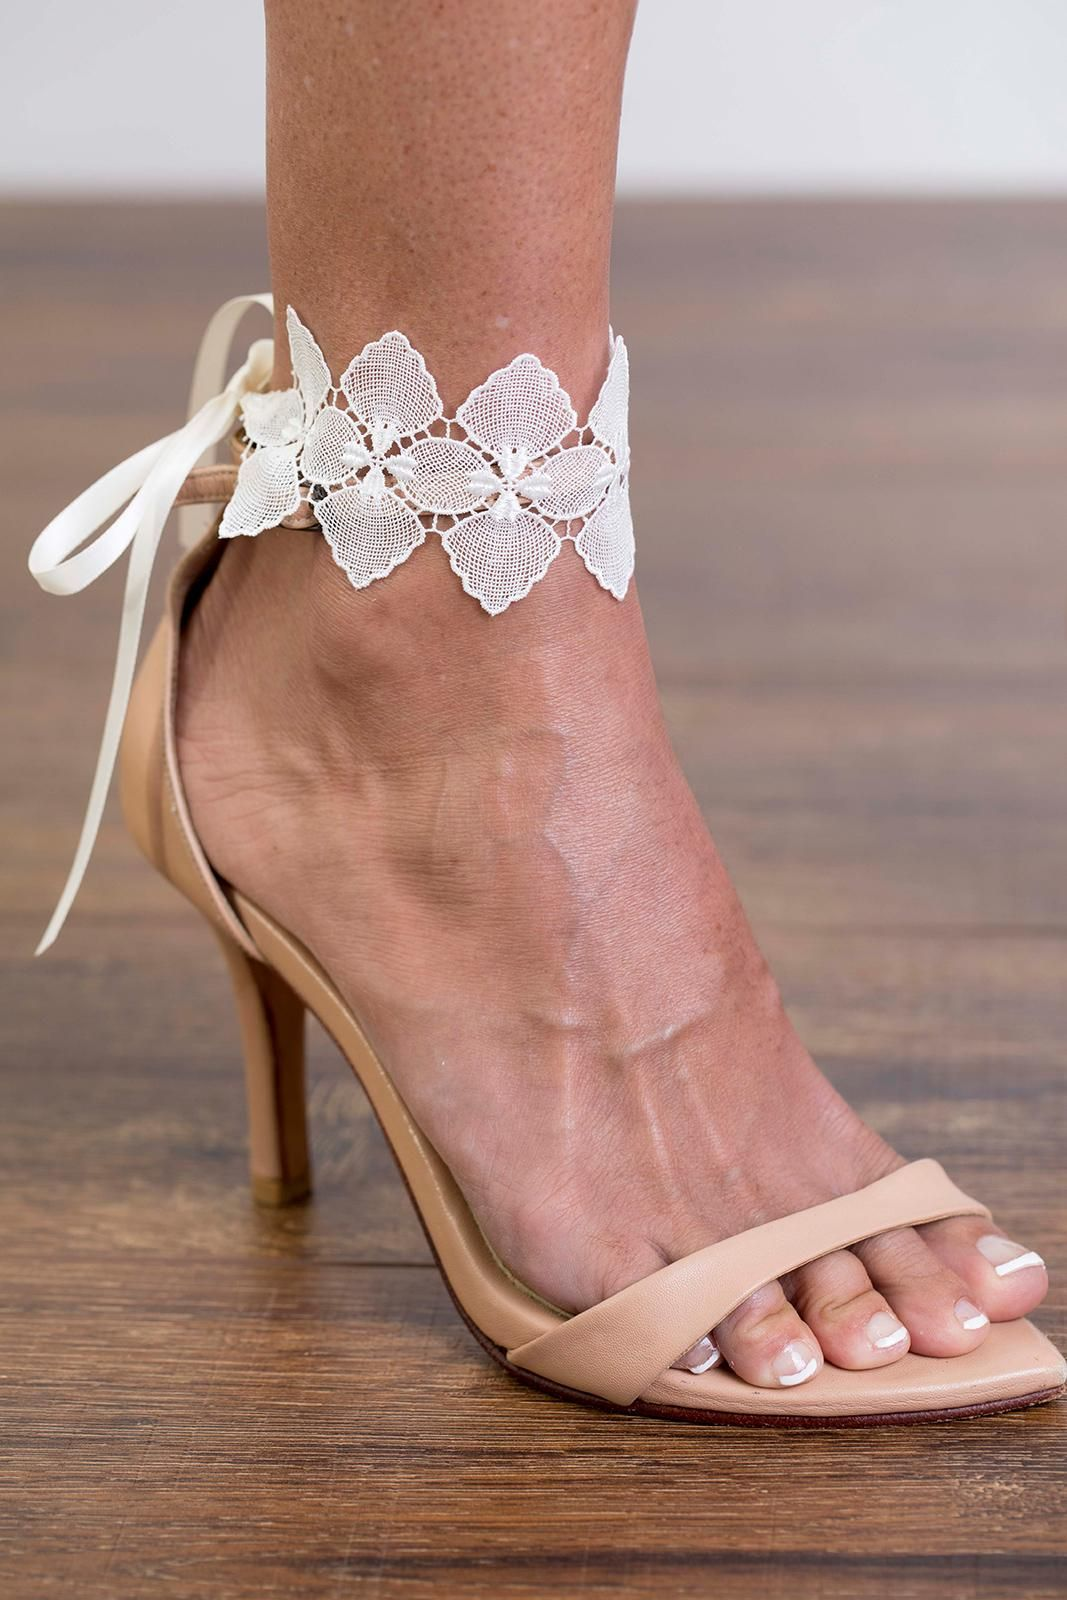 Bloom Anklets Bridal Shoes Accessories In 2020 Boho Wedding